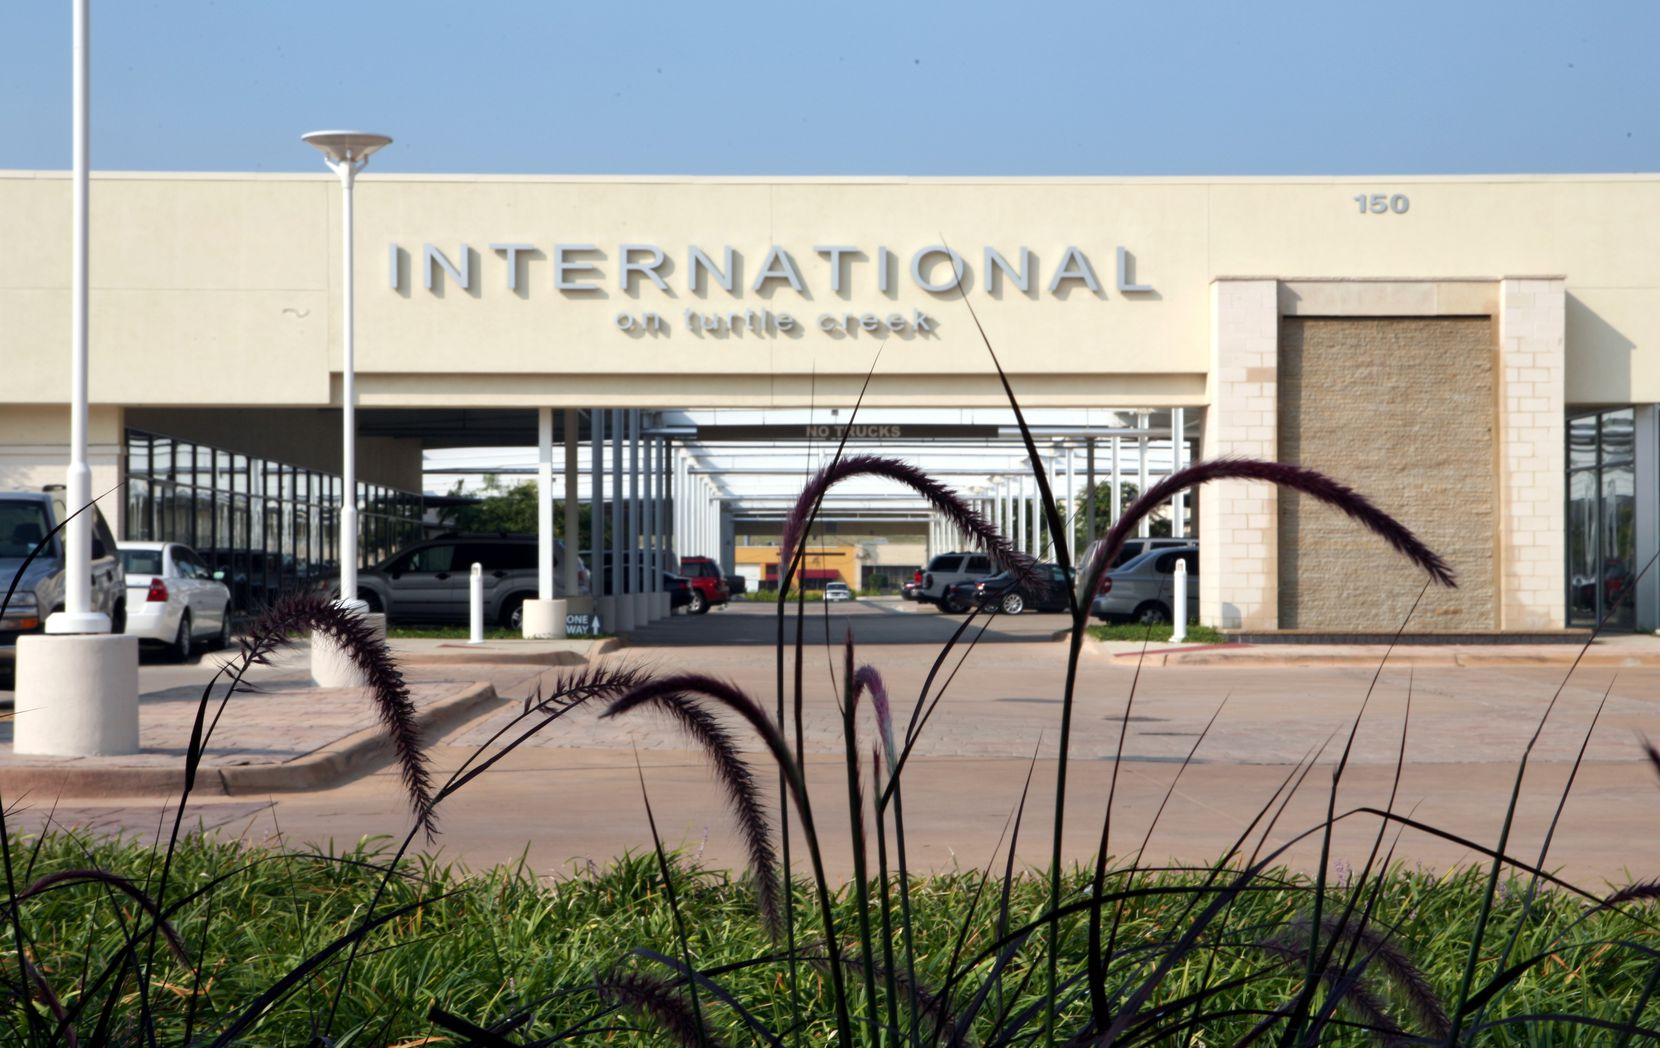 The International on Turtle Creek houses furniture, design and creative firms.